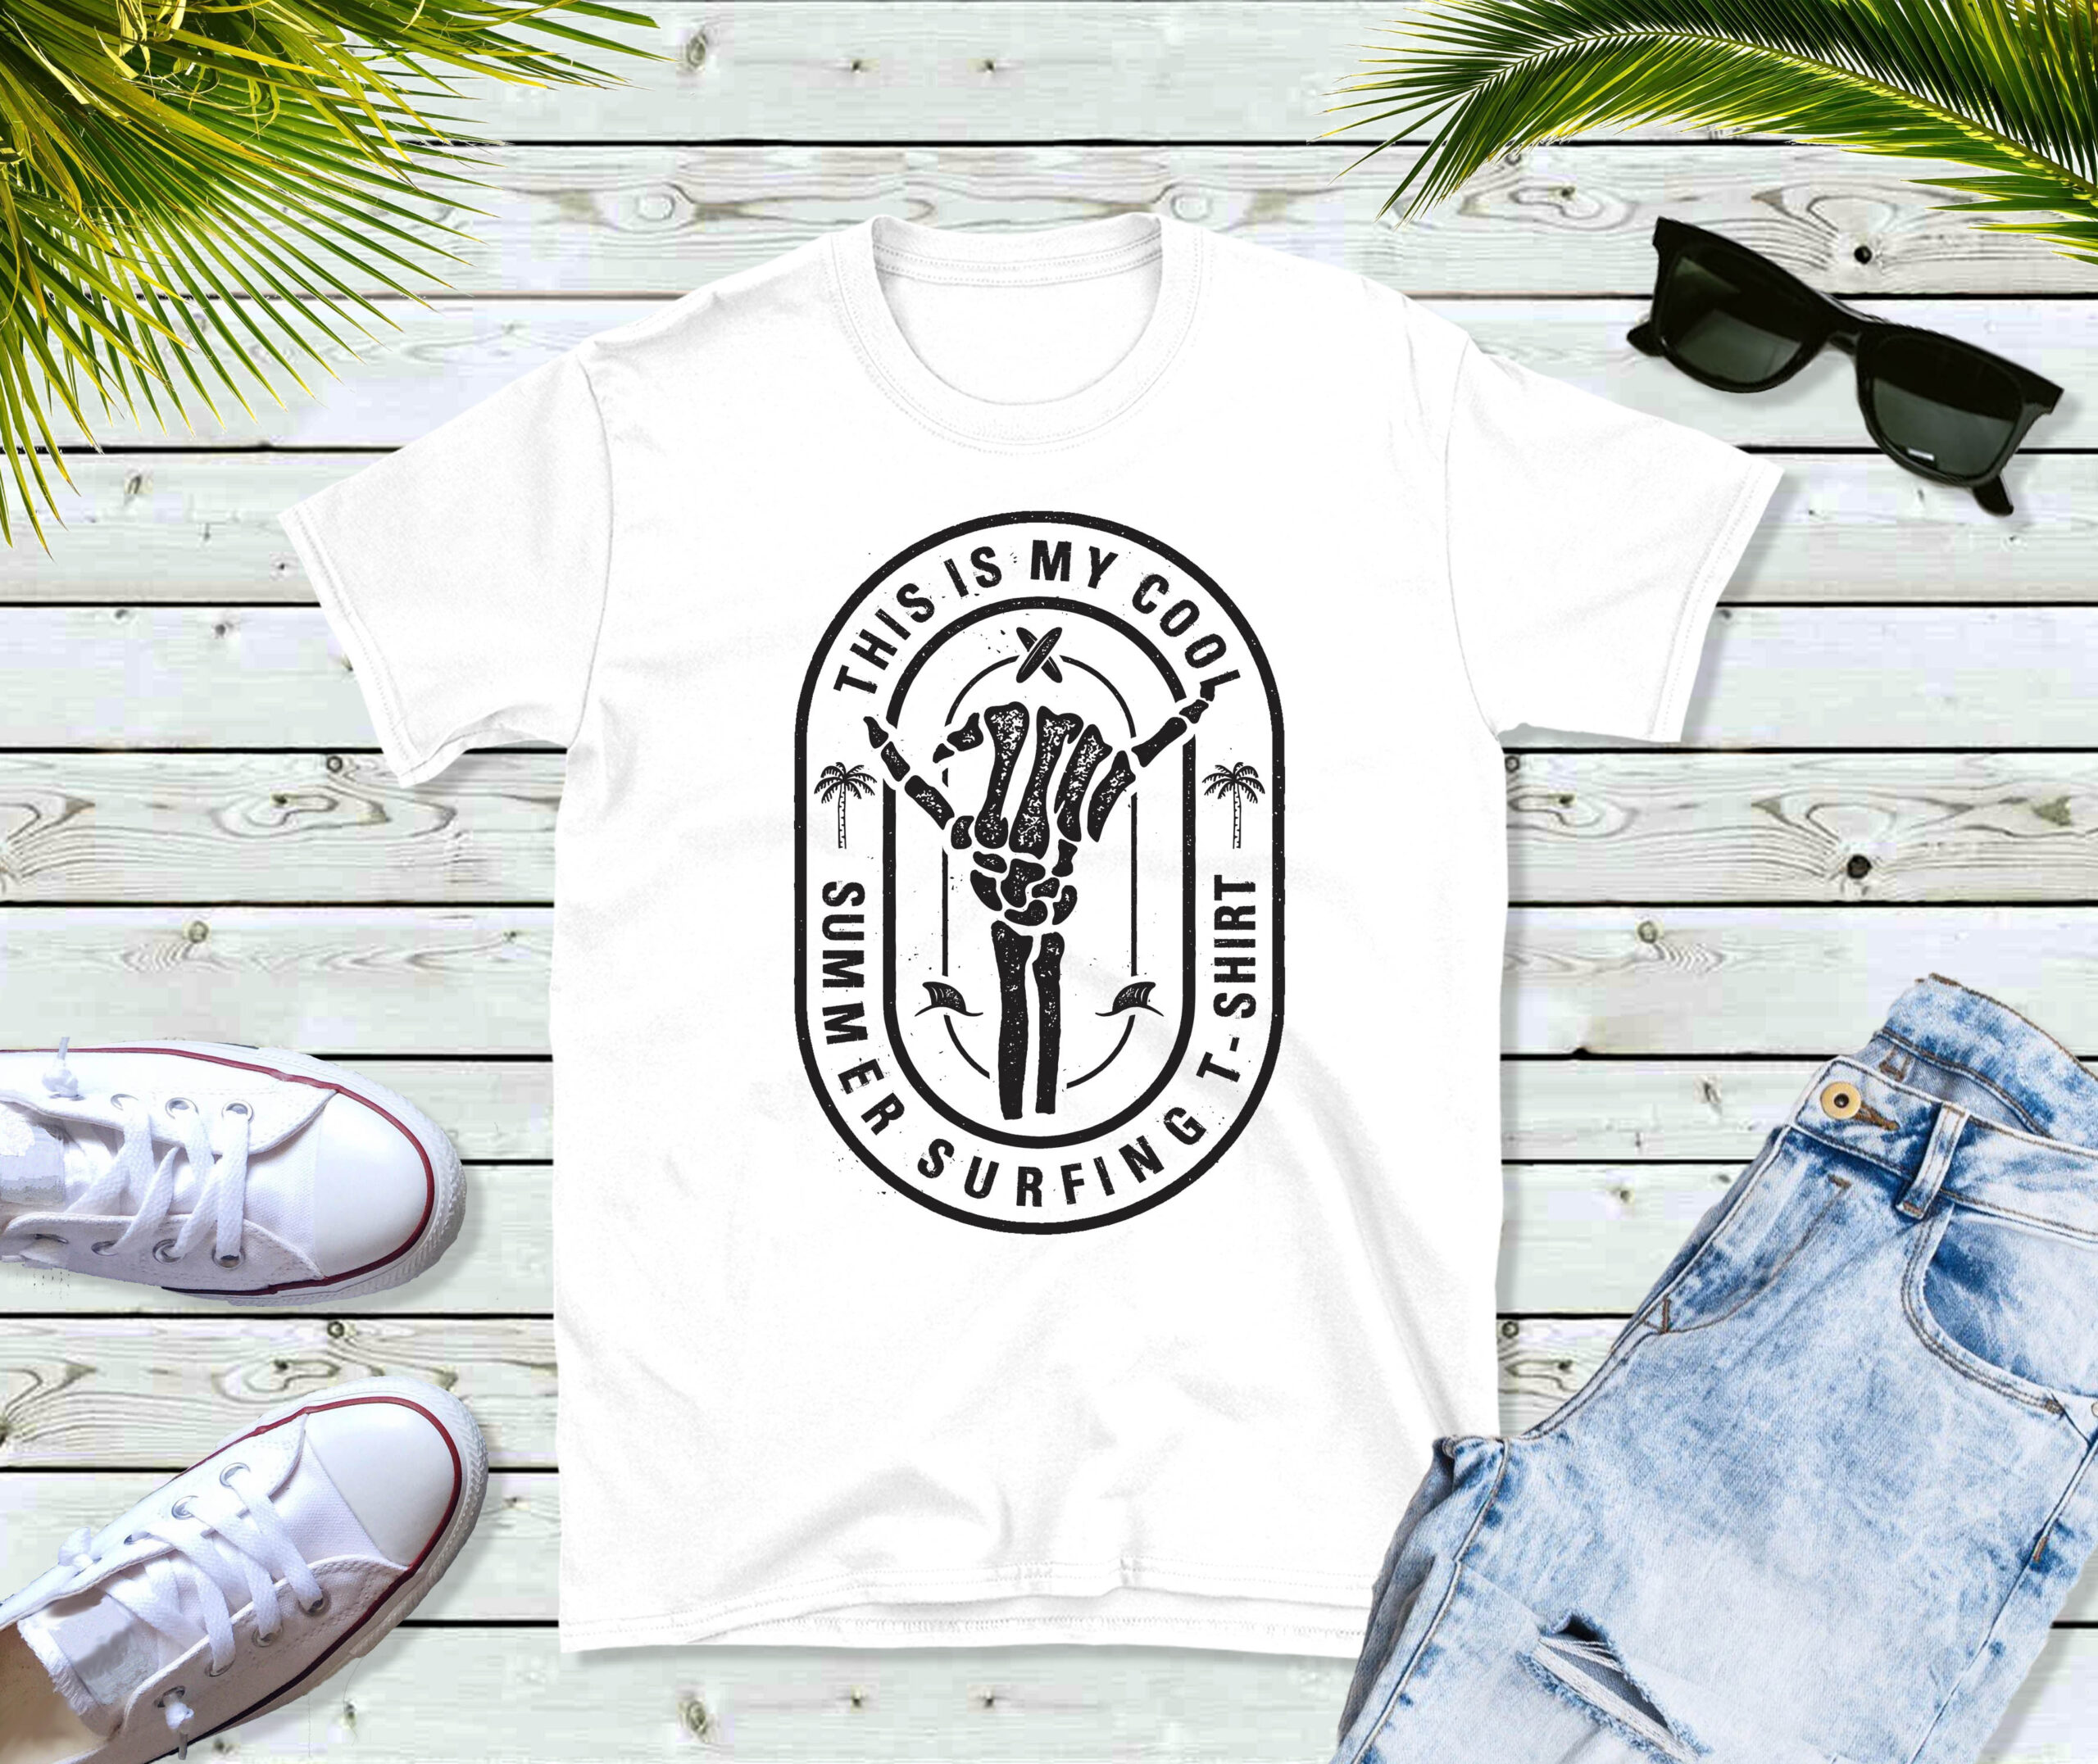 Free Summer Surfing Tee Sublimation File